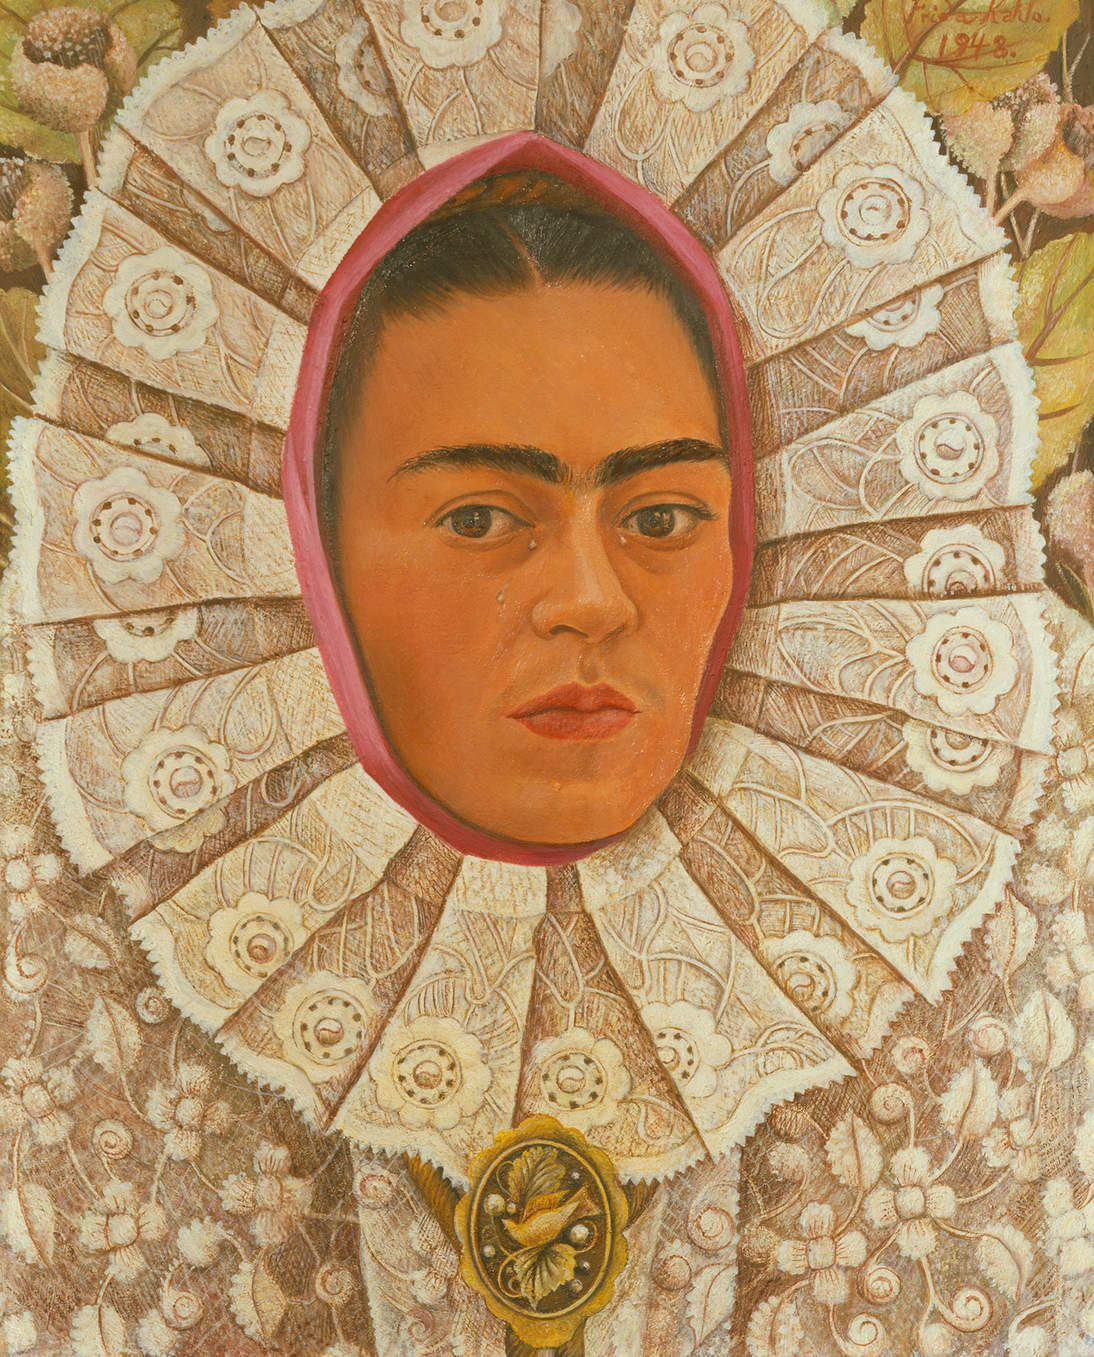 "Frida Kahlo, ""Self-Portrait,"" 1948. Oil on Masonite, 20 x 15.6 in. (50 x 39.5 cm). Private collection © 2020 Banco de México Diego Rivera & Frida Kahlo Museums Trust. Av. 5 de Mayo No. 2, Col. Centro, alc. Cuauhtémoc, C.P. 06000, Mexico City / Artists Rights Society (ARS), New York / Erich Lessing / Art Resource, NY"